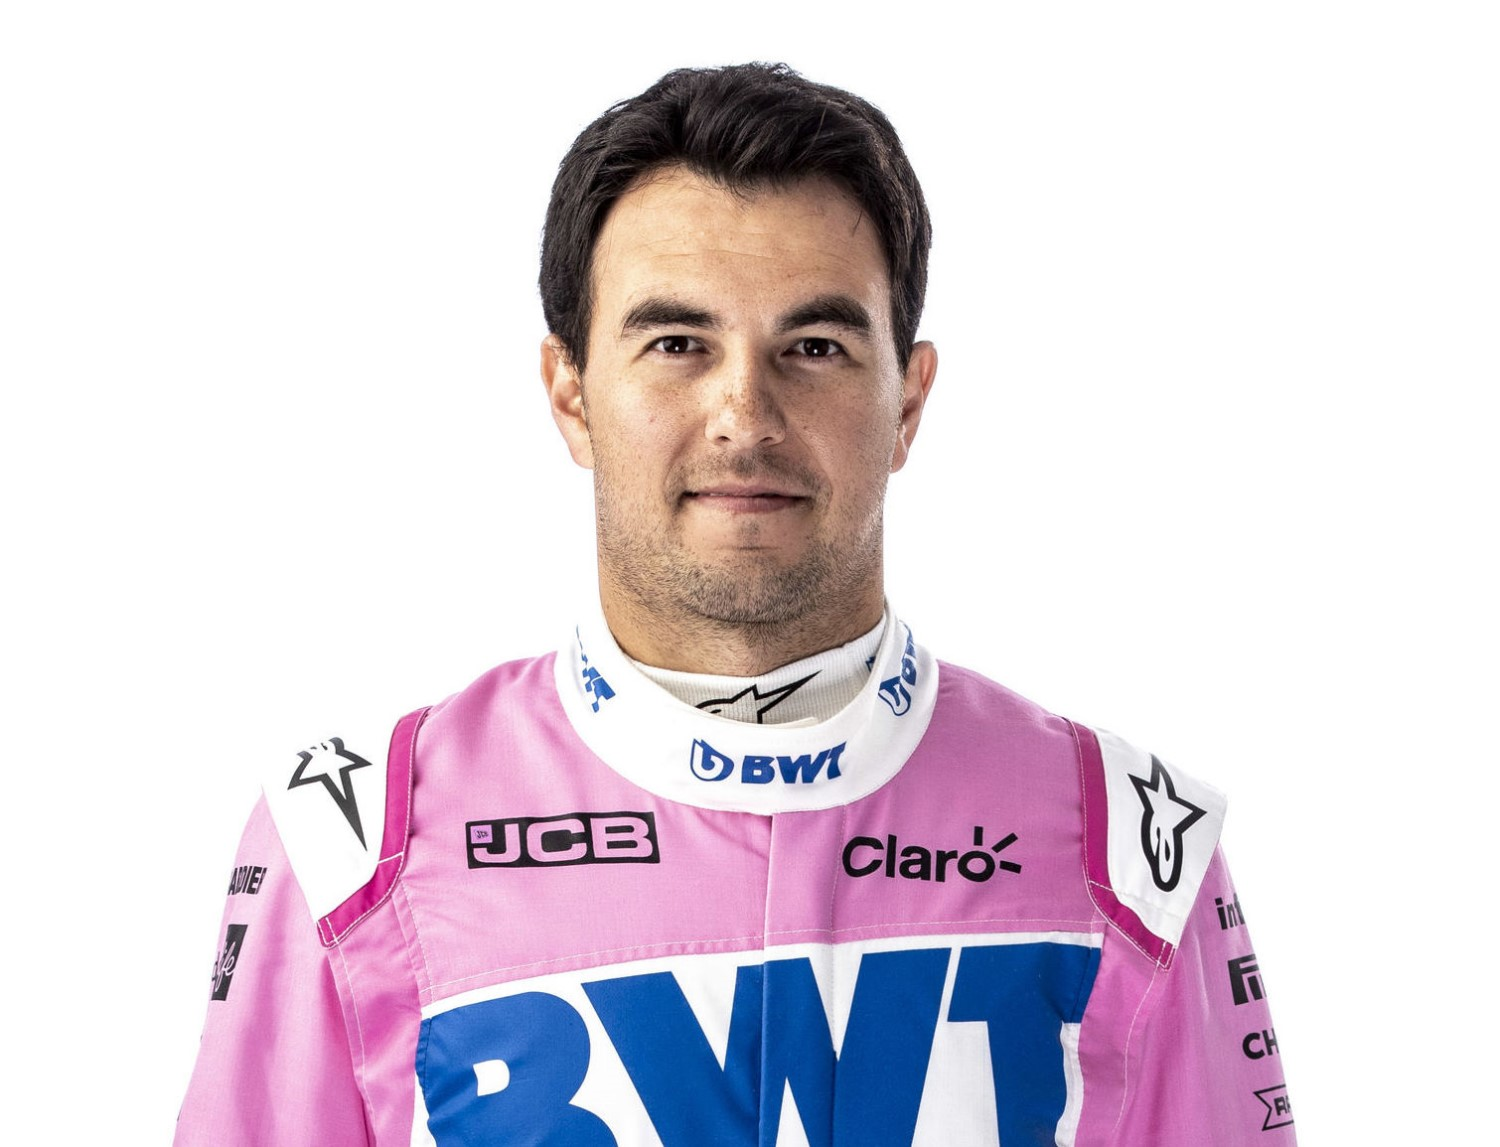 Sergio Perez, as good as he is, has to buy his seat in F1